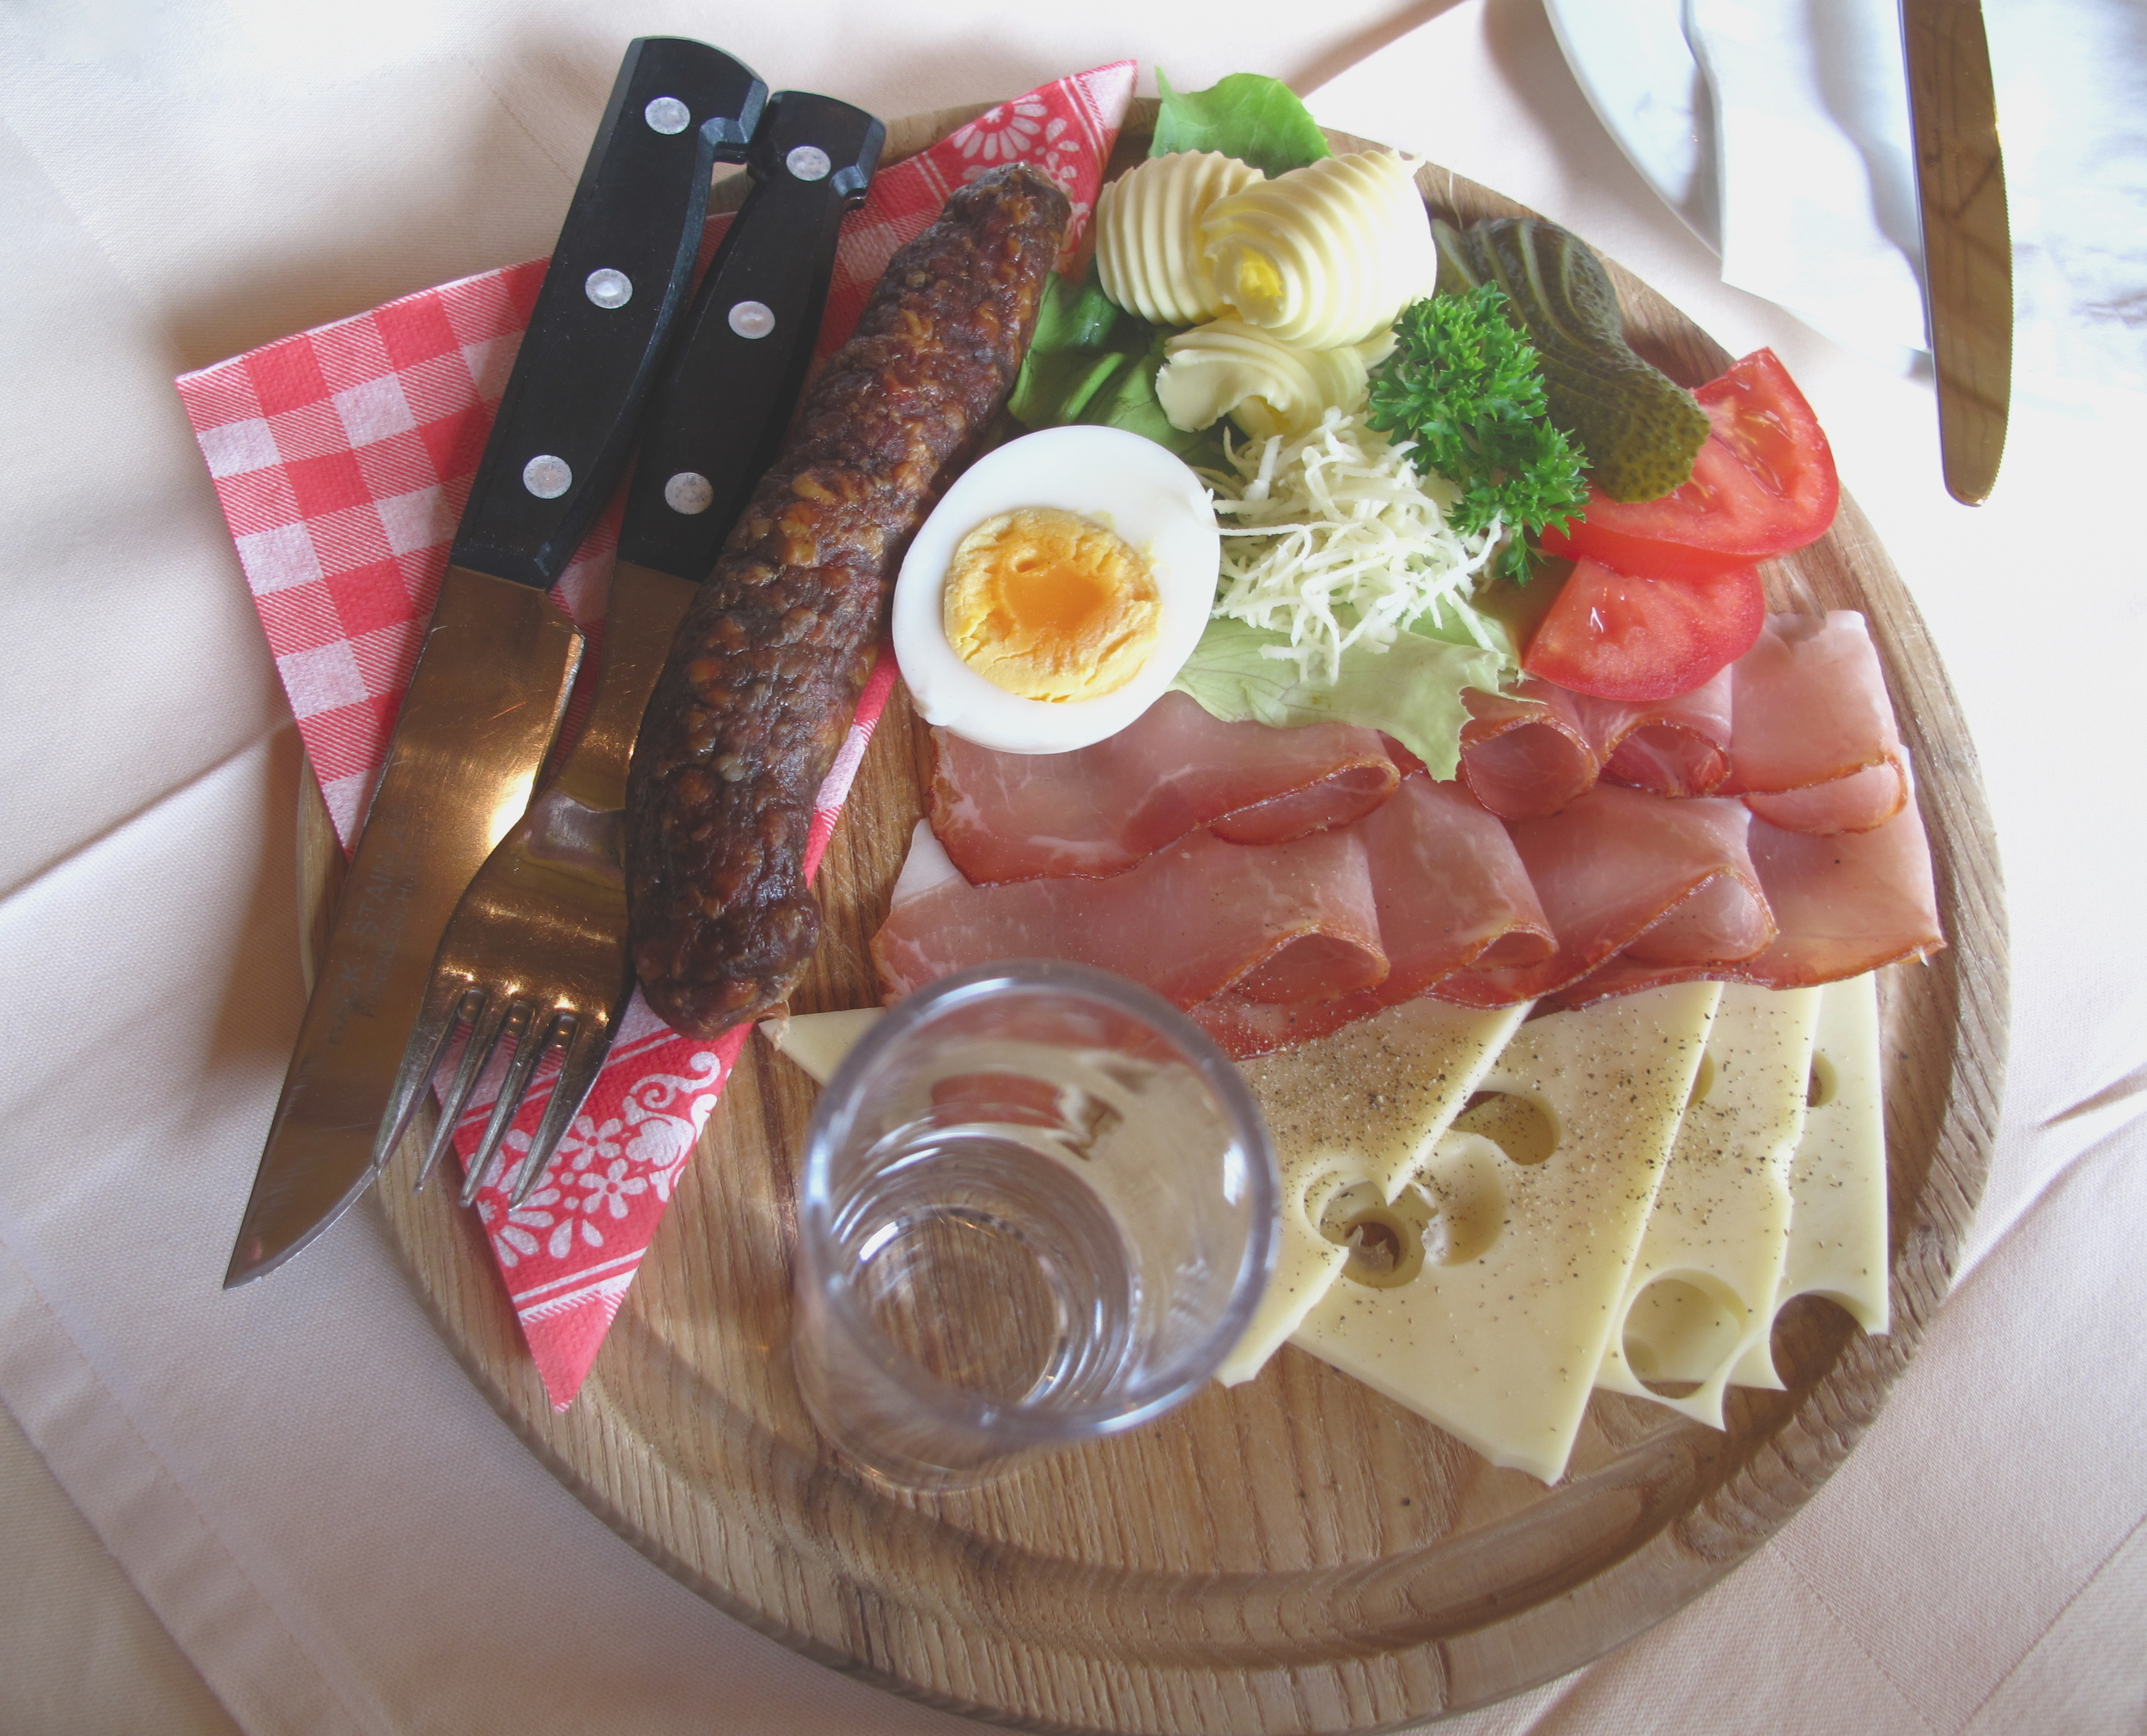 Platter of fresh Austrian produce - cheese, meat, sausage, eggs and butter.